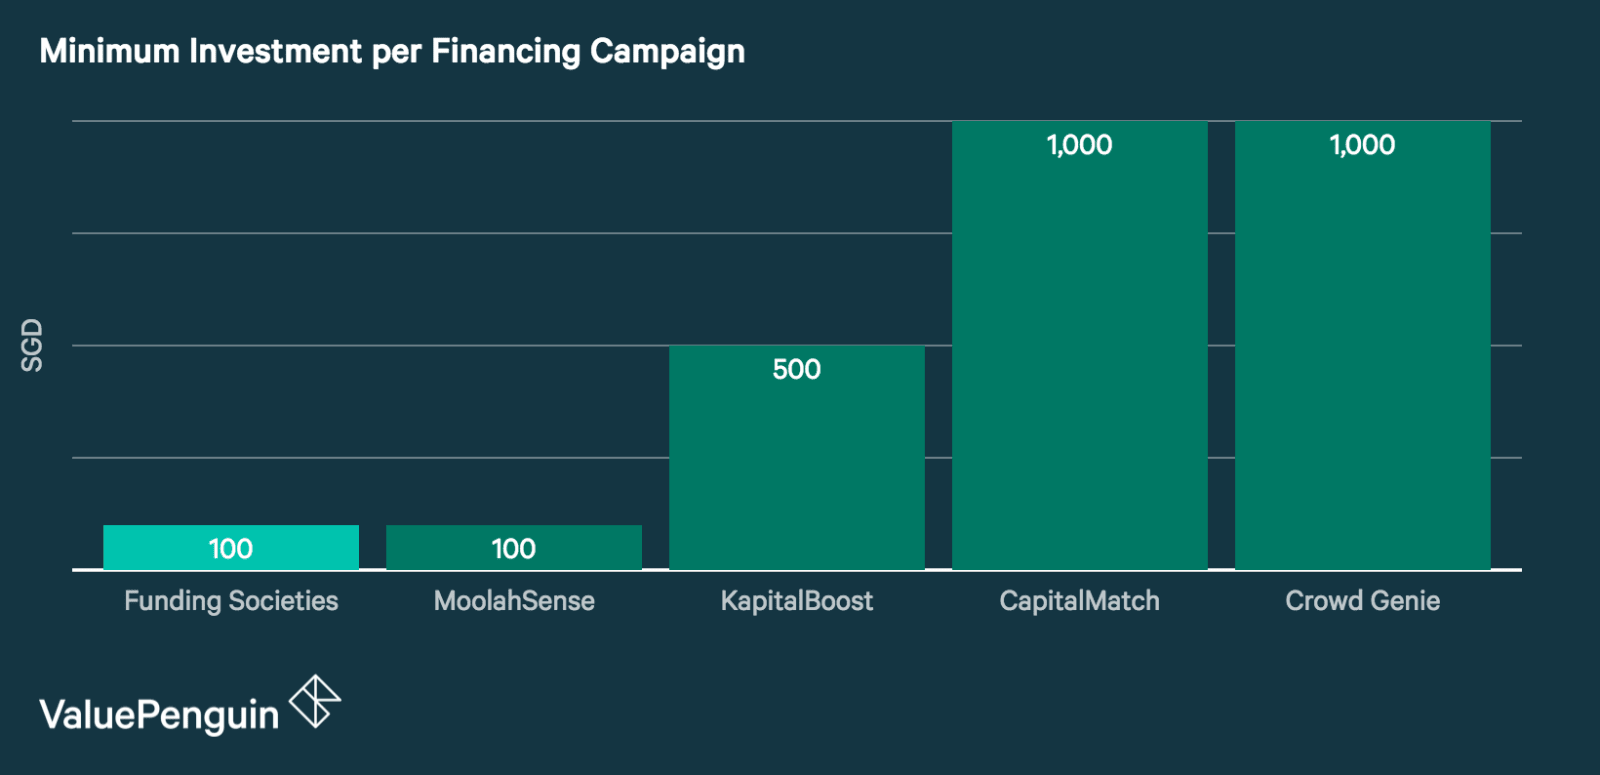 Graph showing the Minimum investment per financing campaign requirement of five major P2P platforms in Singapore. Funding Societies and MoolahSense have the lowest required investment per campaign